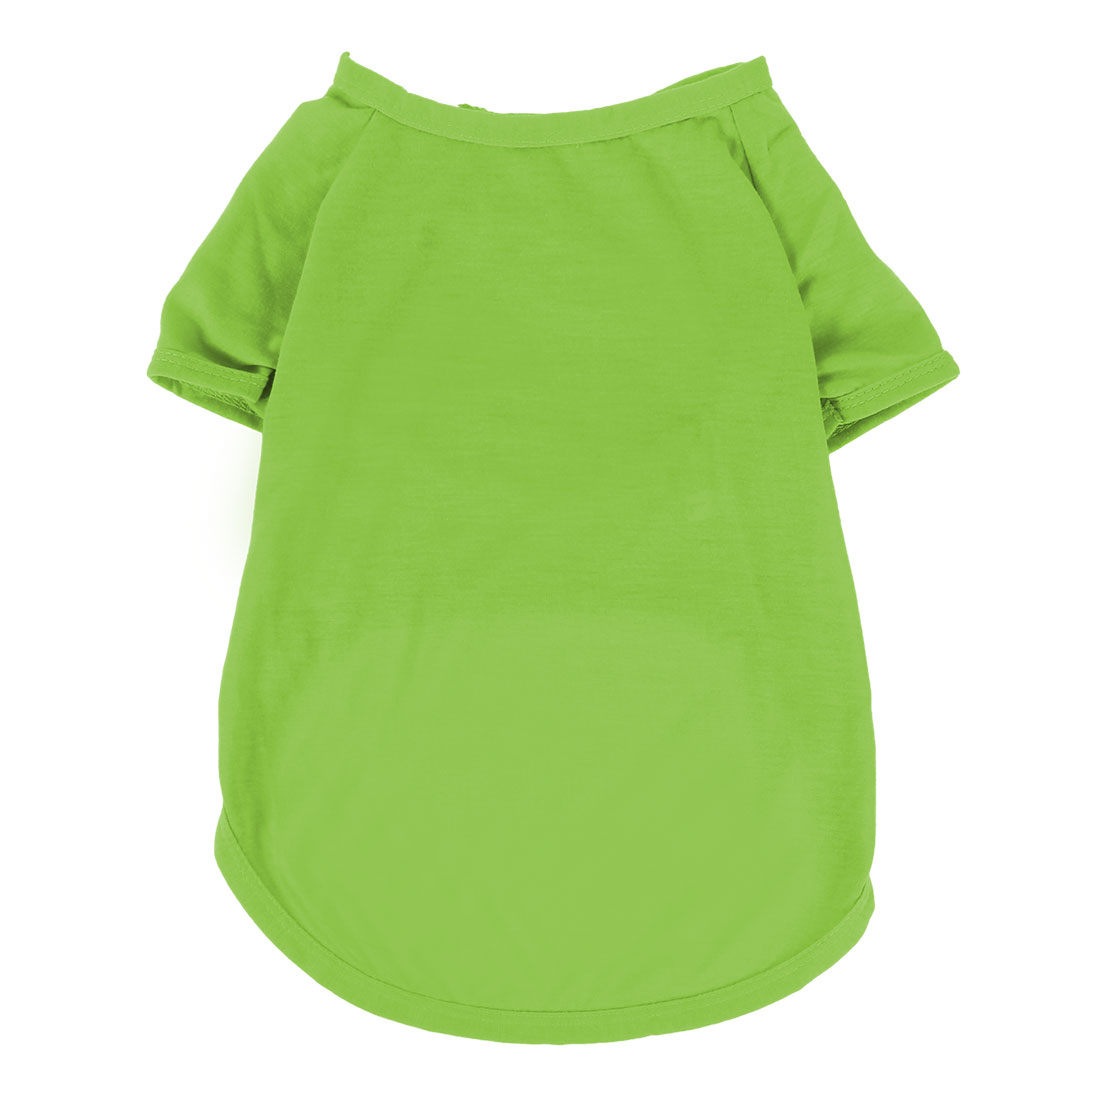 Pet Dog Cotton Blend Summer Short Sleeve T-Shirt Vest Clothes Green Size XL - image 4 of 4